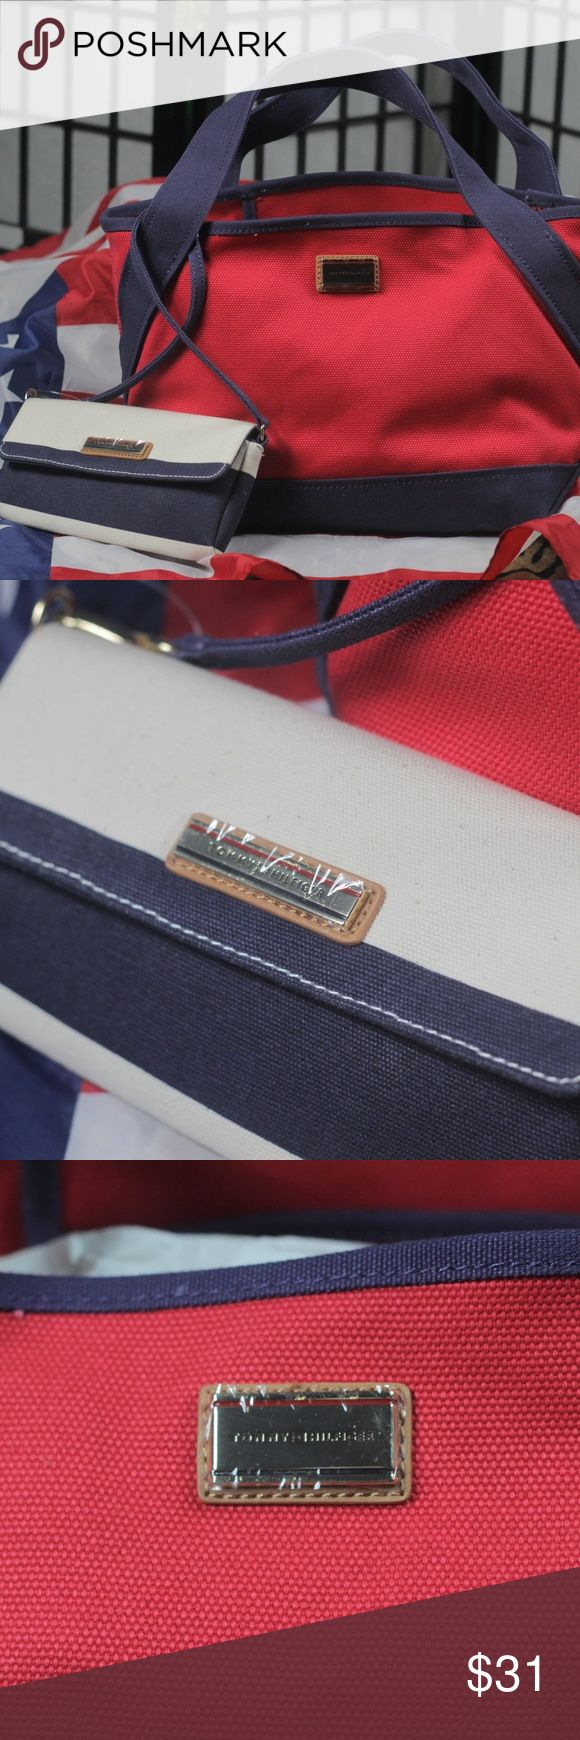 BRAND NEW TOMMY HILFIGER TOTE & WALLET Brand new 100% authentic Tommy Hilfiger tote and wallet  Tag still on it This is a cotton and cotton wallet very nice combination red white and blue Tommy Hilfiger Bags Totes